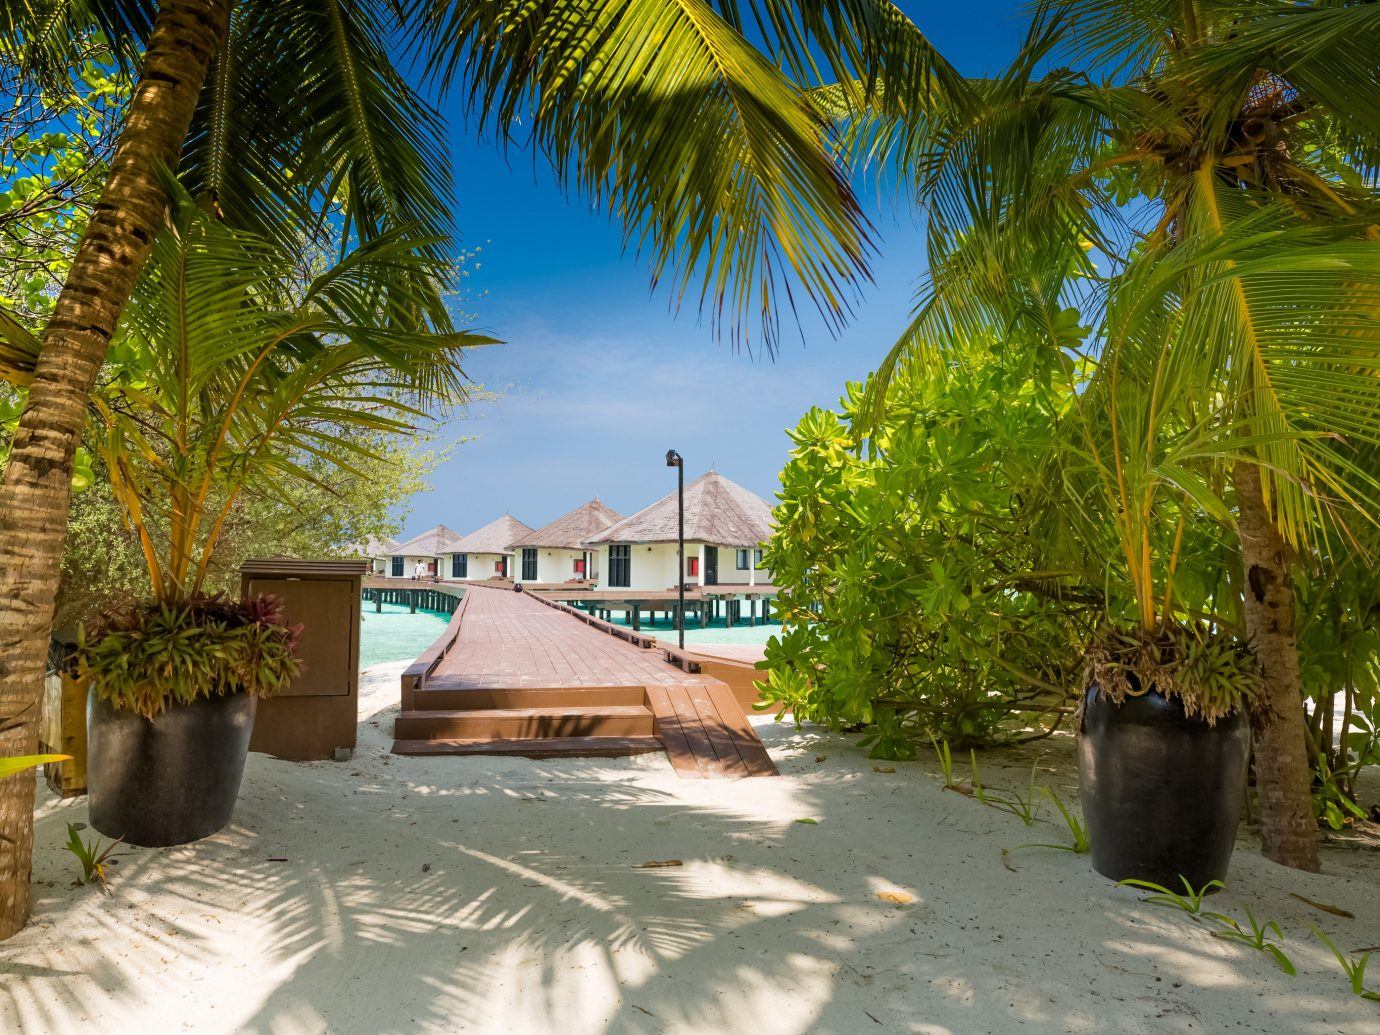 Hotels tree outdoor palm Resort vacation palm family tropics arecales Beach woody plant estate caribbean plant Jungle lined surrounded shade